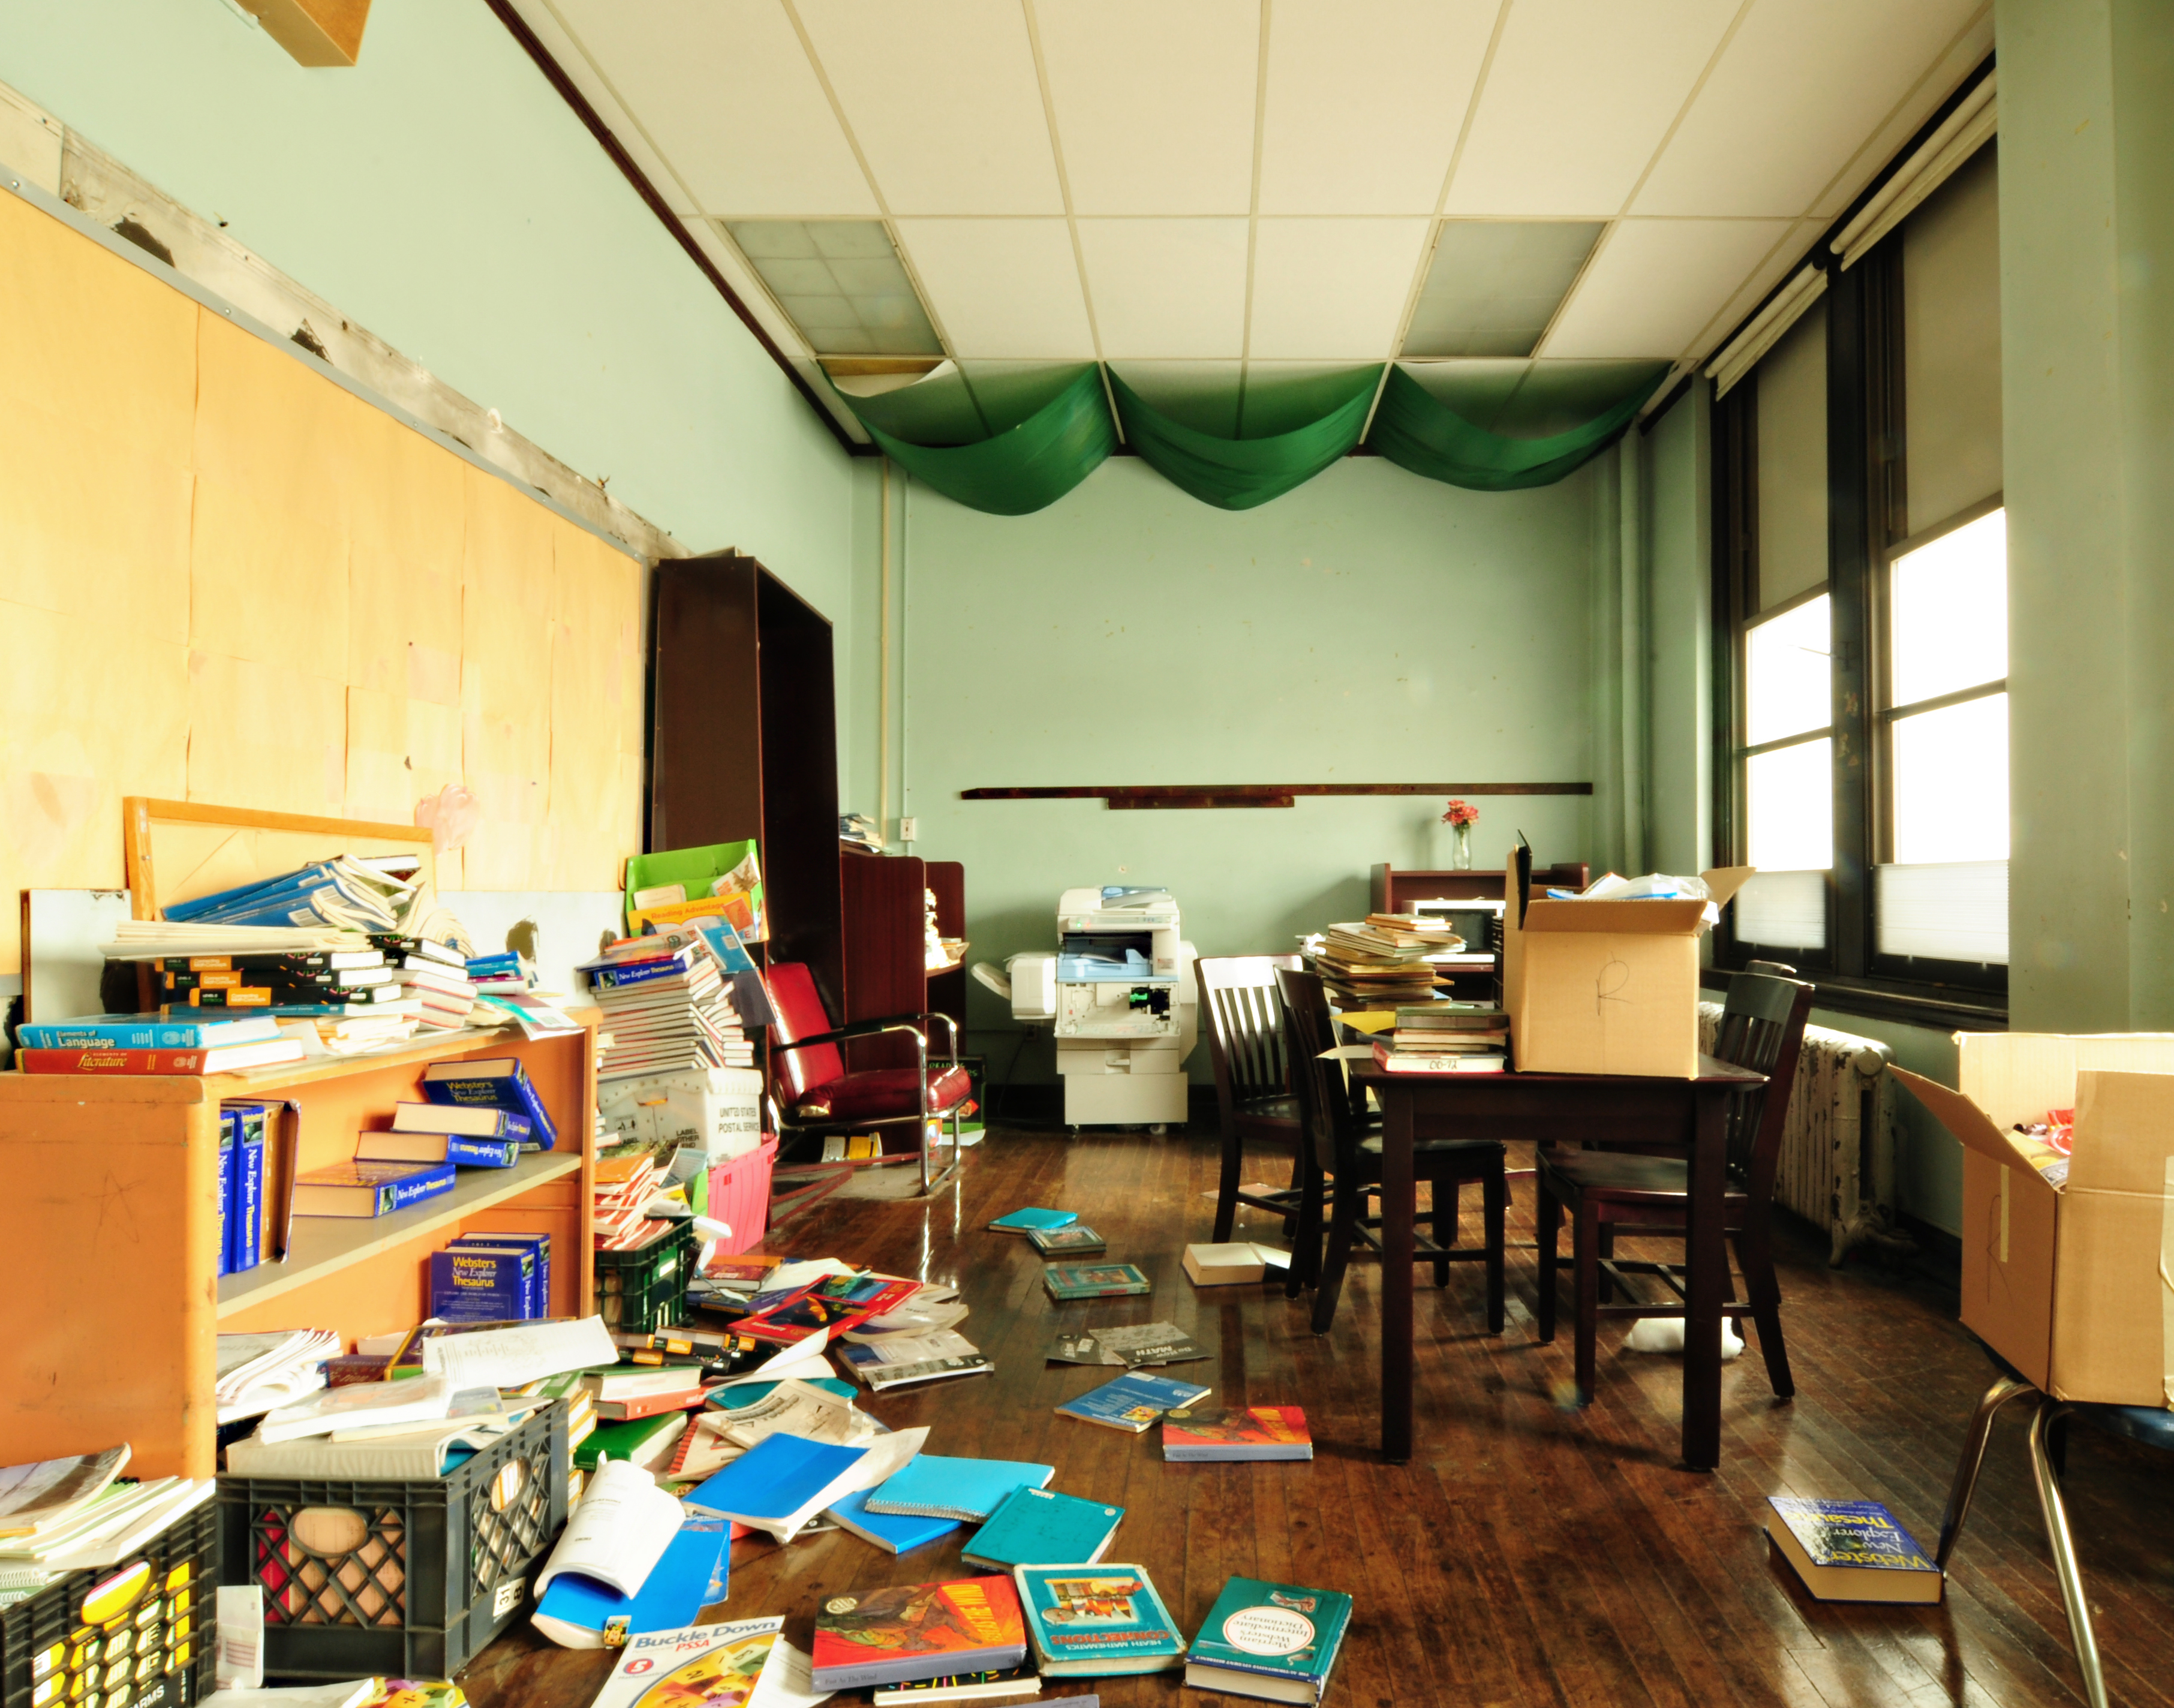 Harrison Elementary School | Photo: Katrina Ohstrom